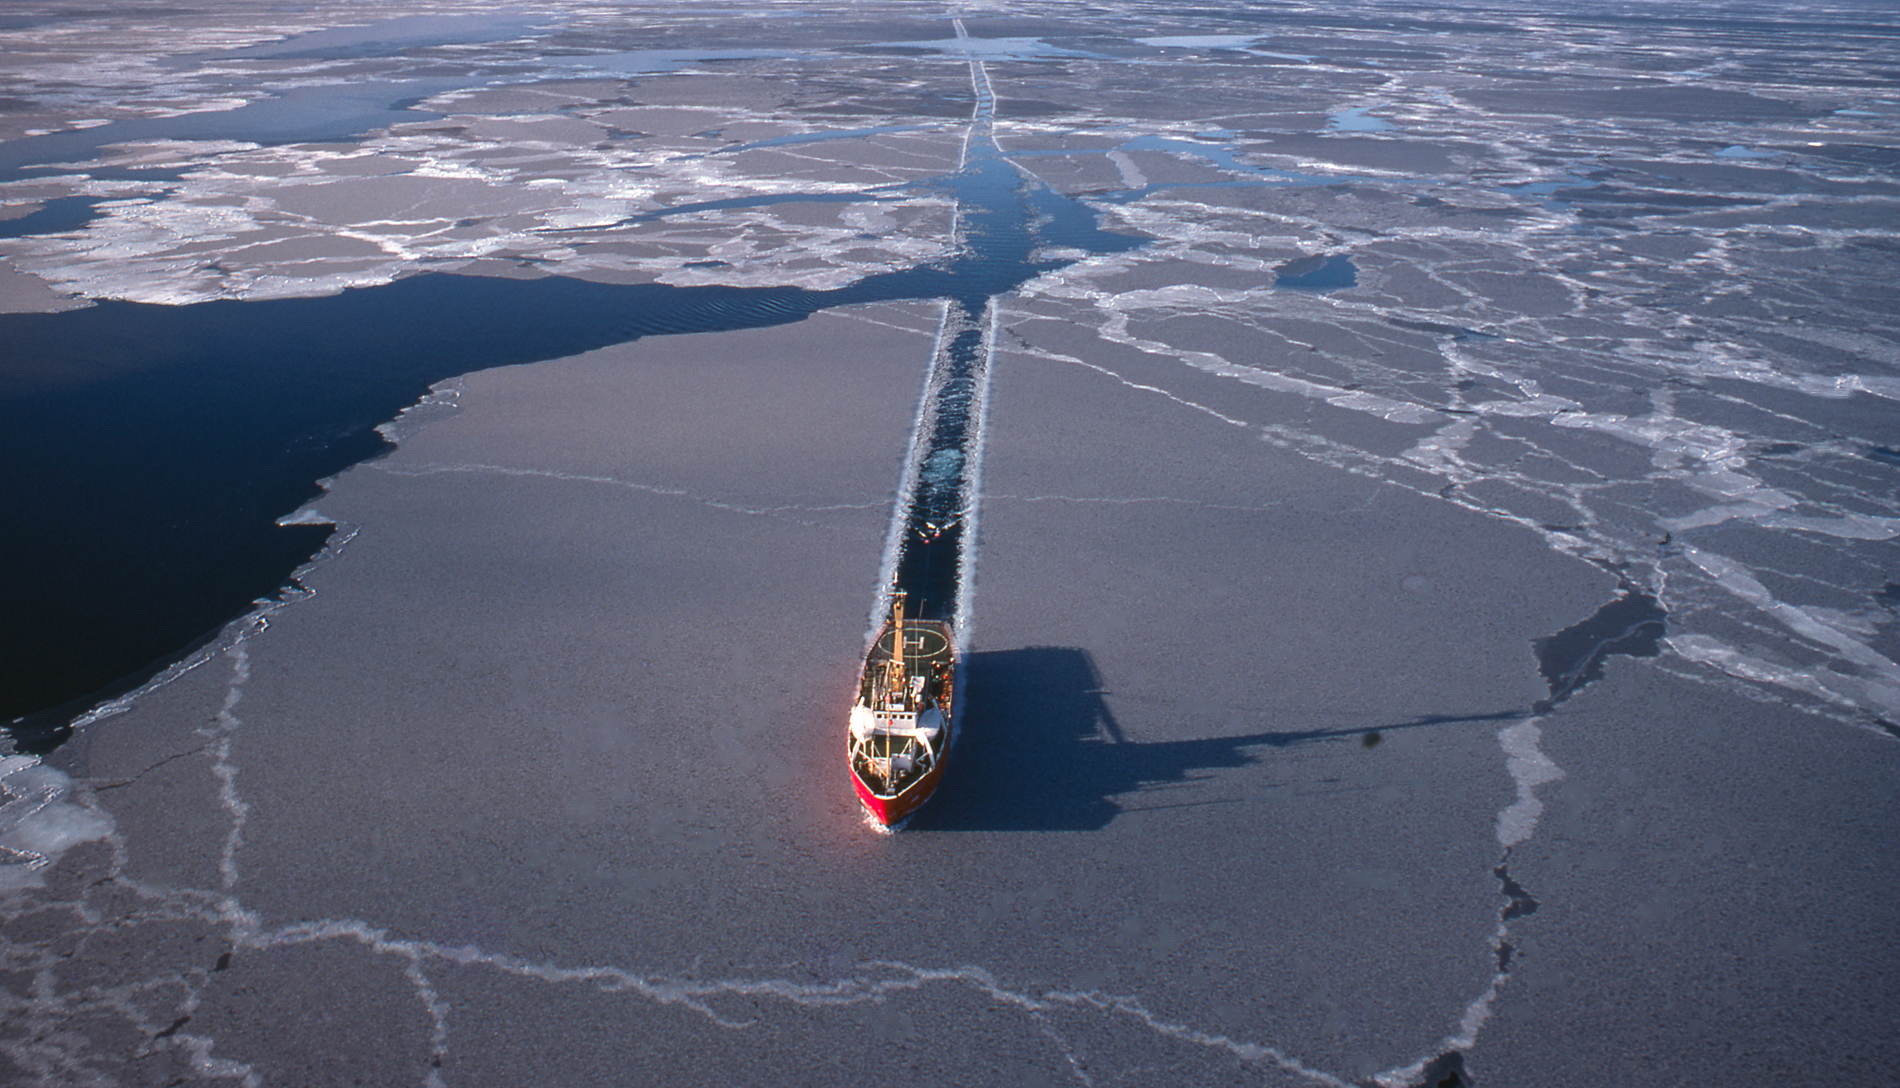 Recent developments send mixed signals about the future of Arctic shipping